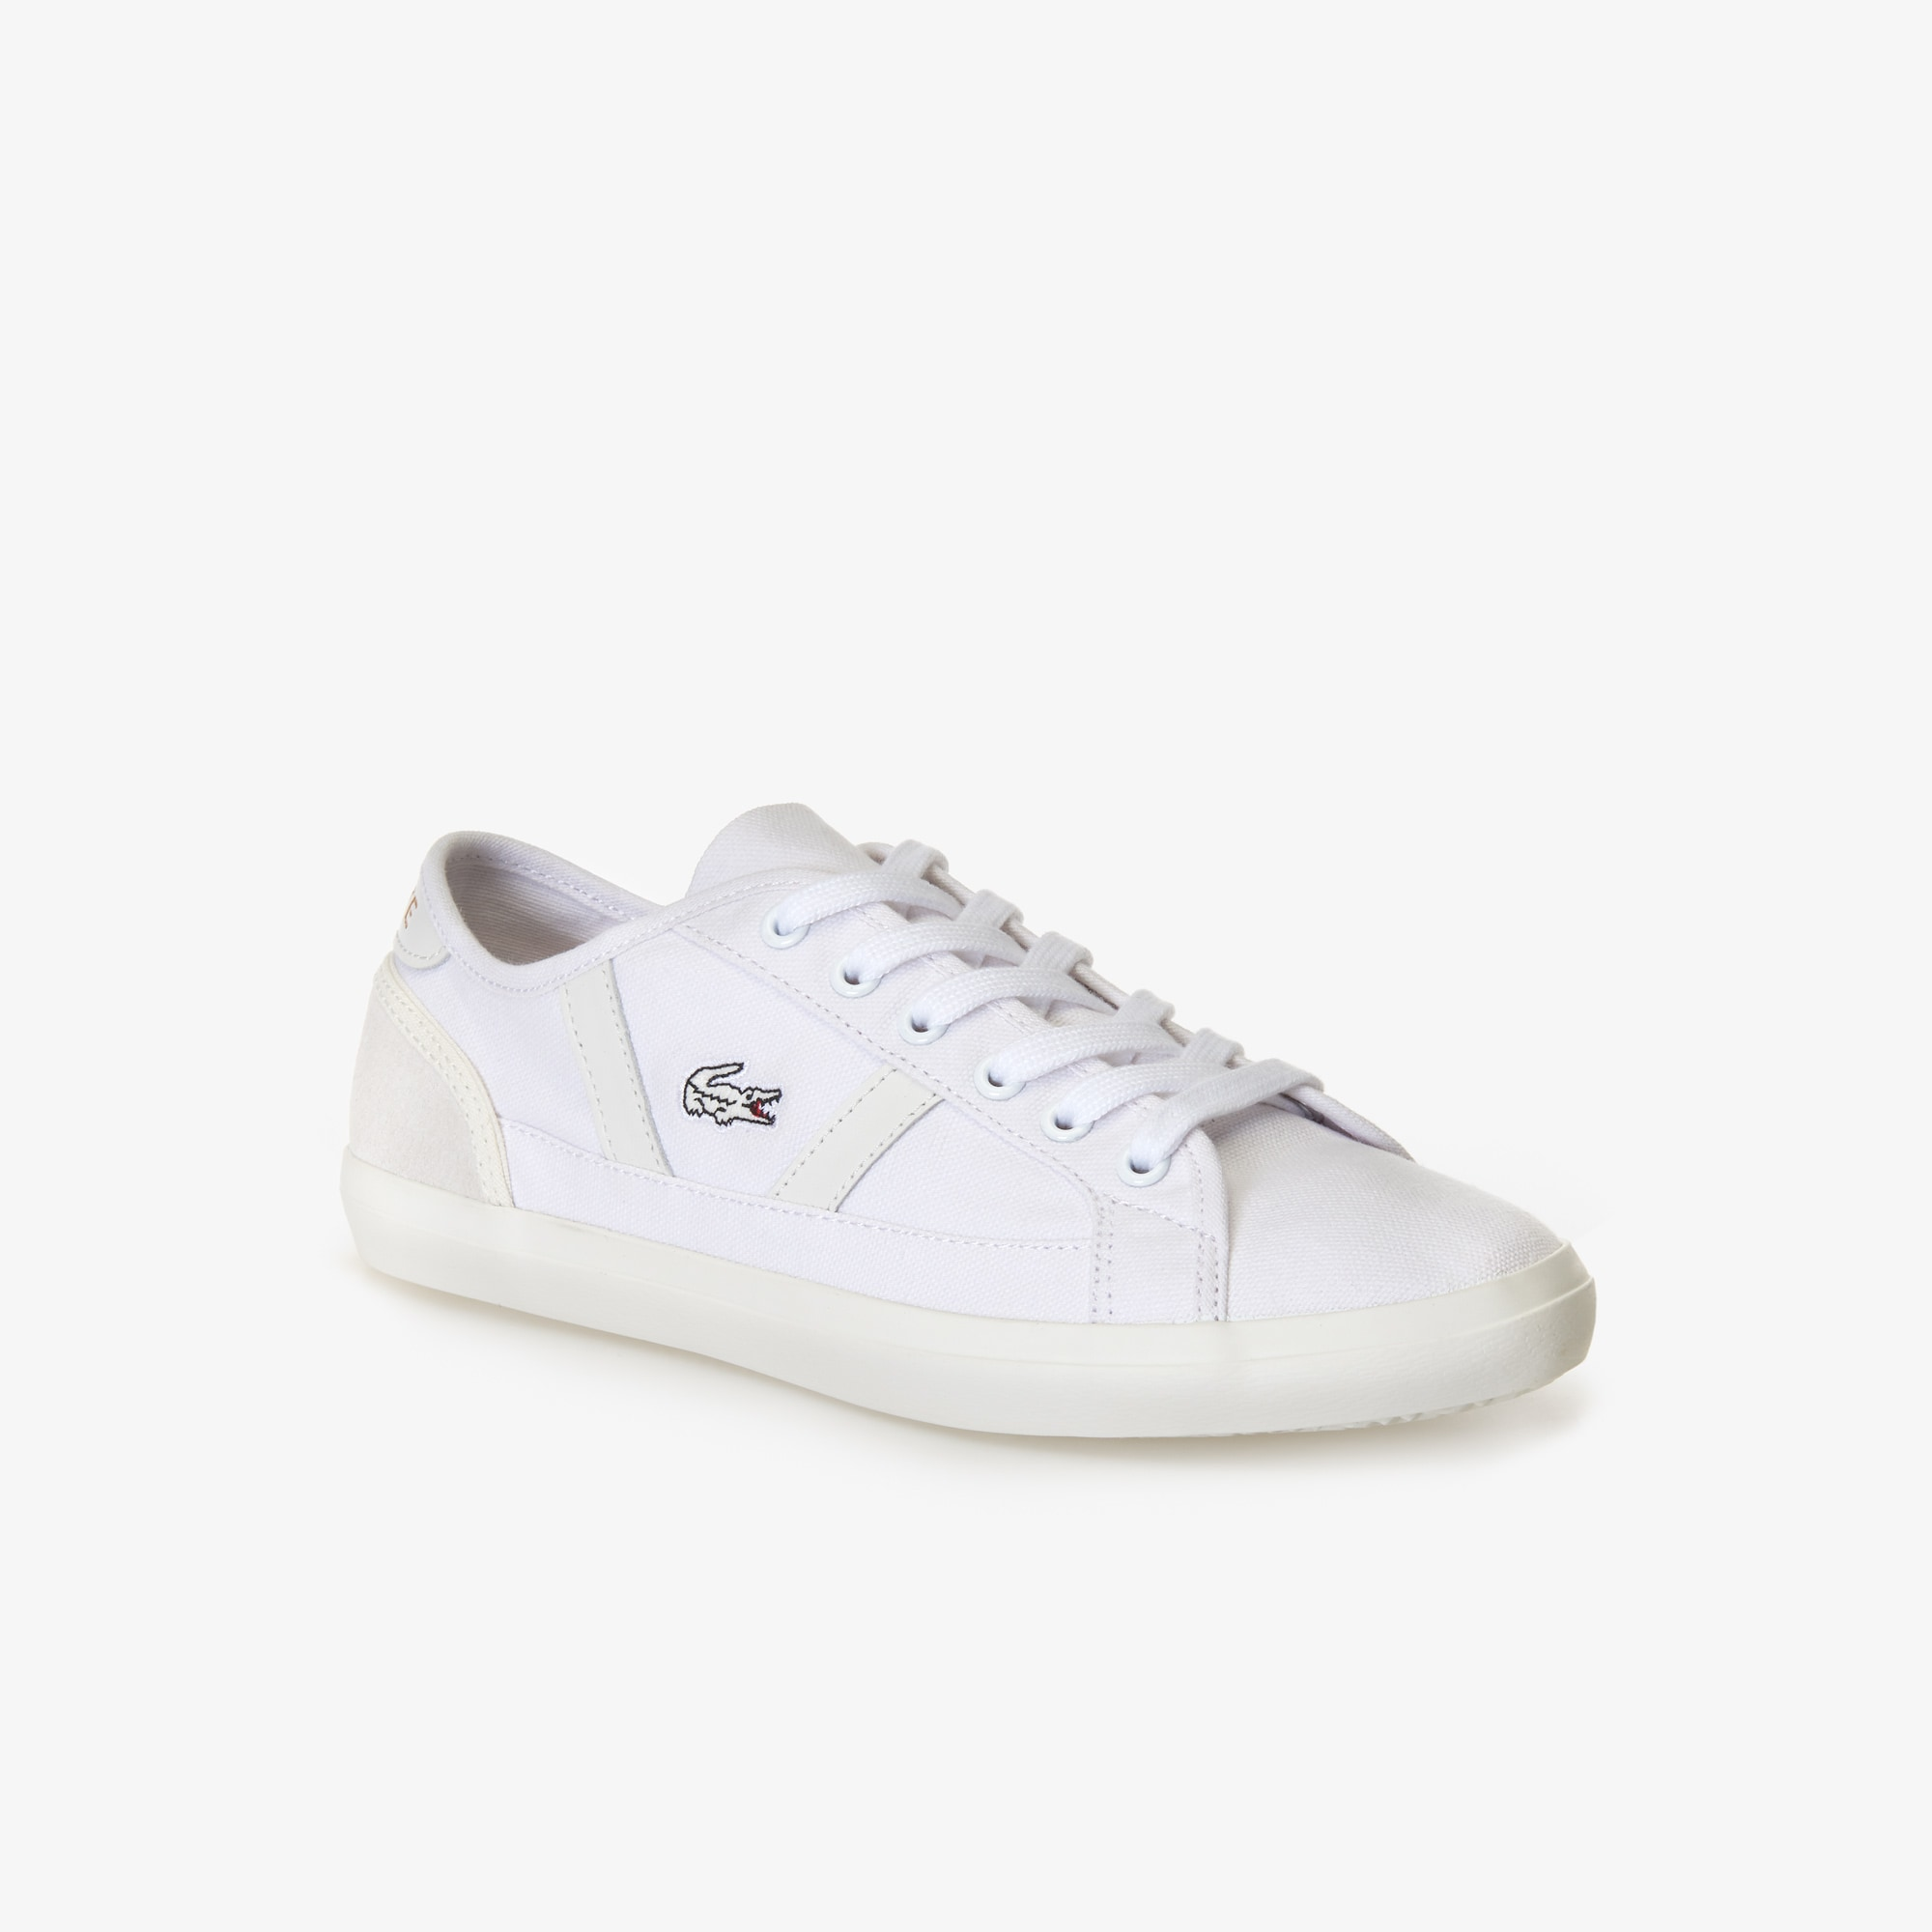 Women's Sideline Canvas and Leather Trainers